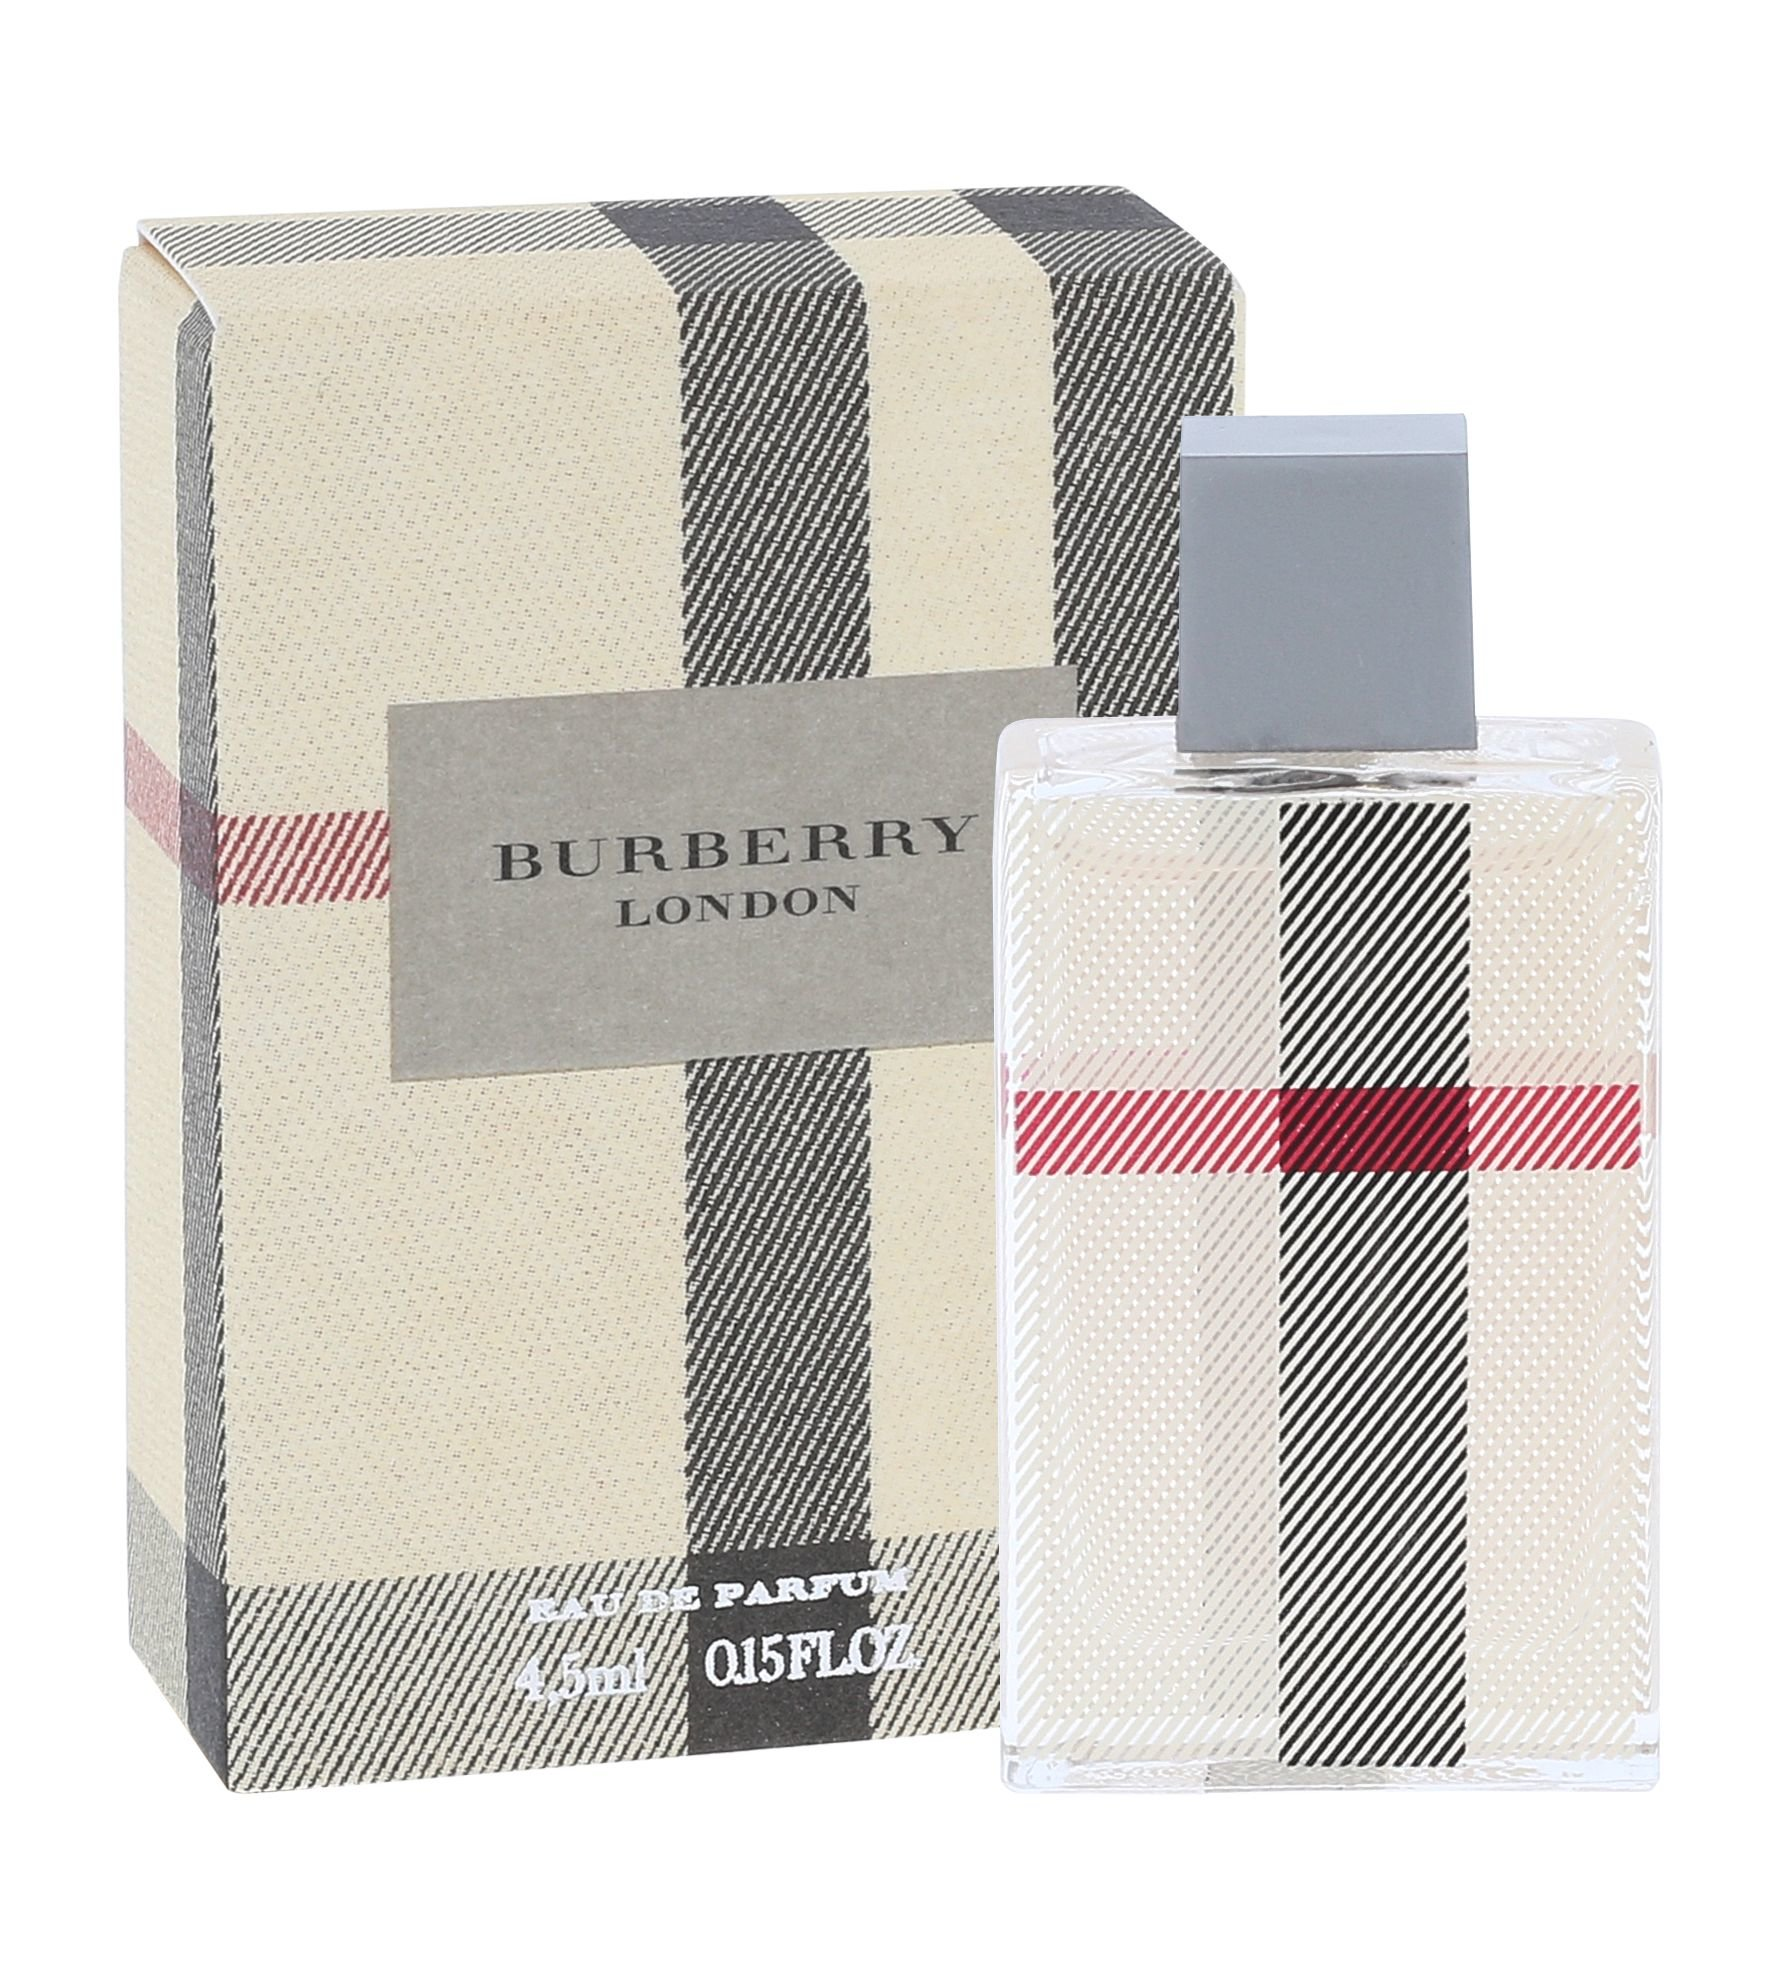 Burberry London EDP 4,5ml